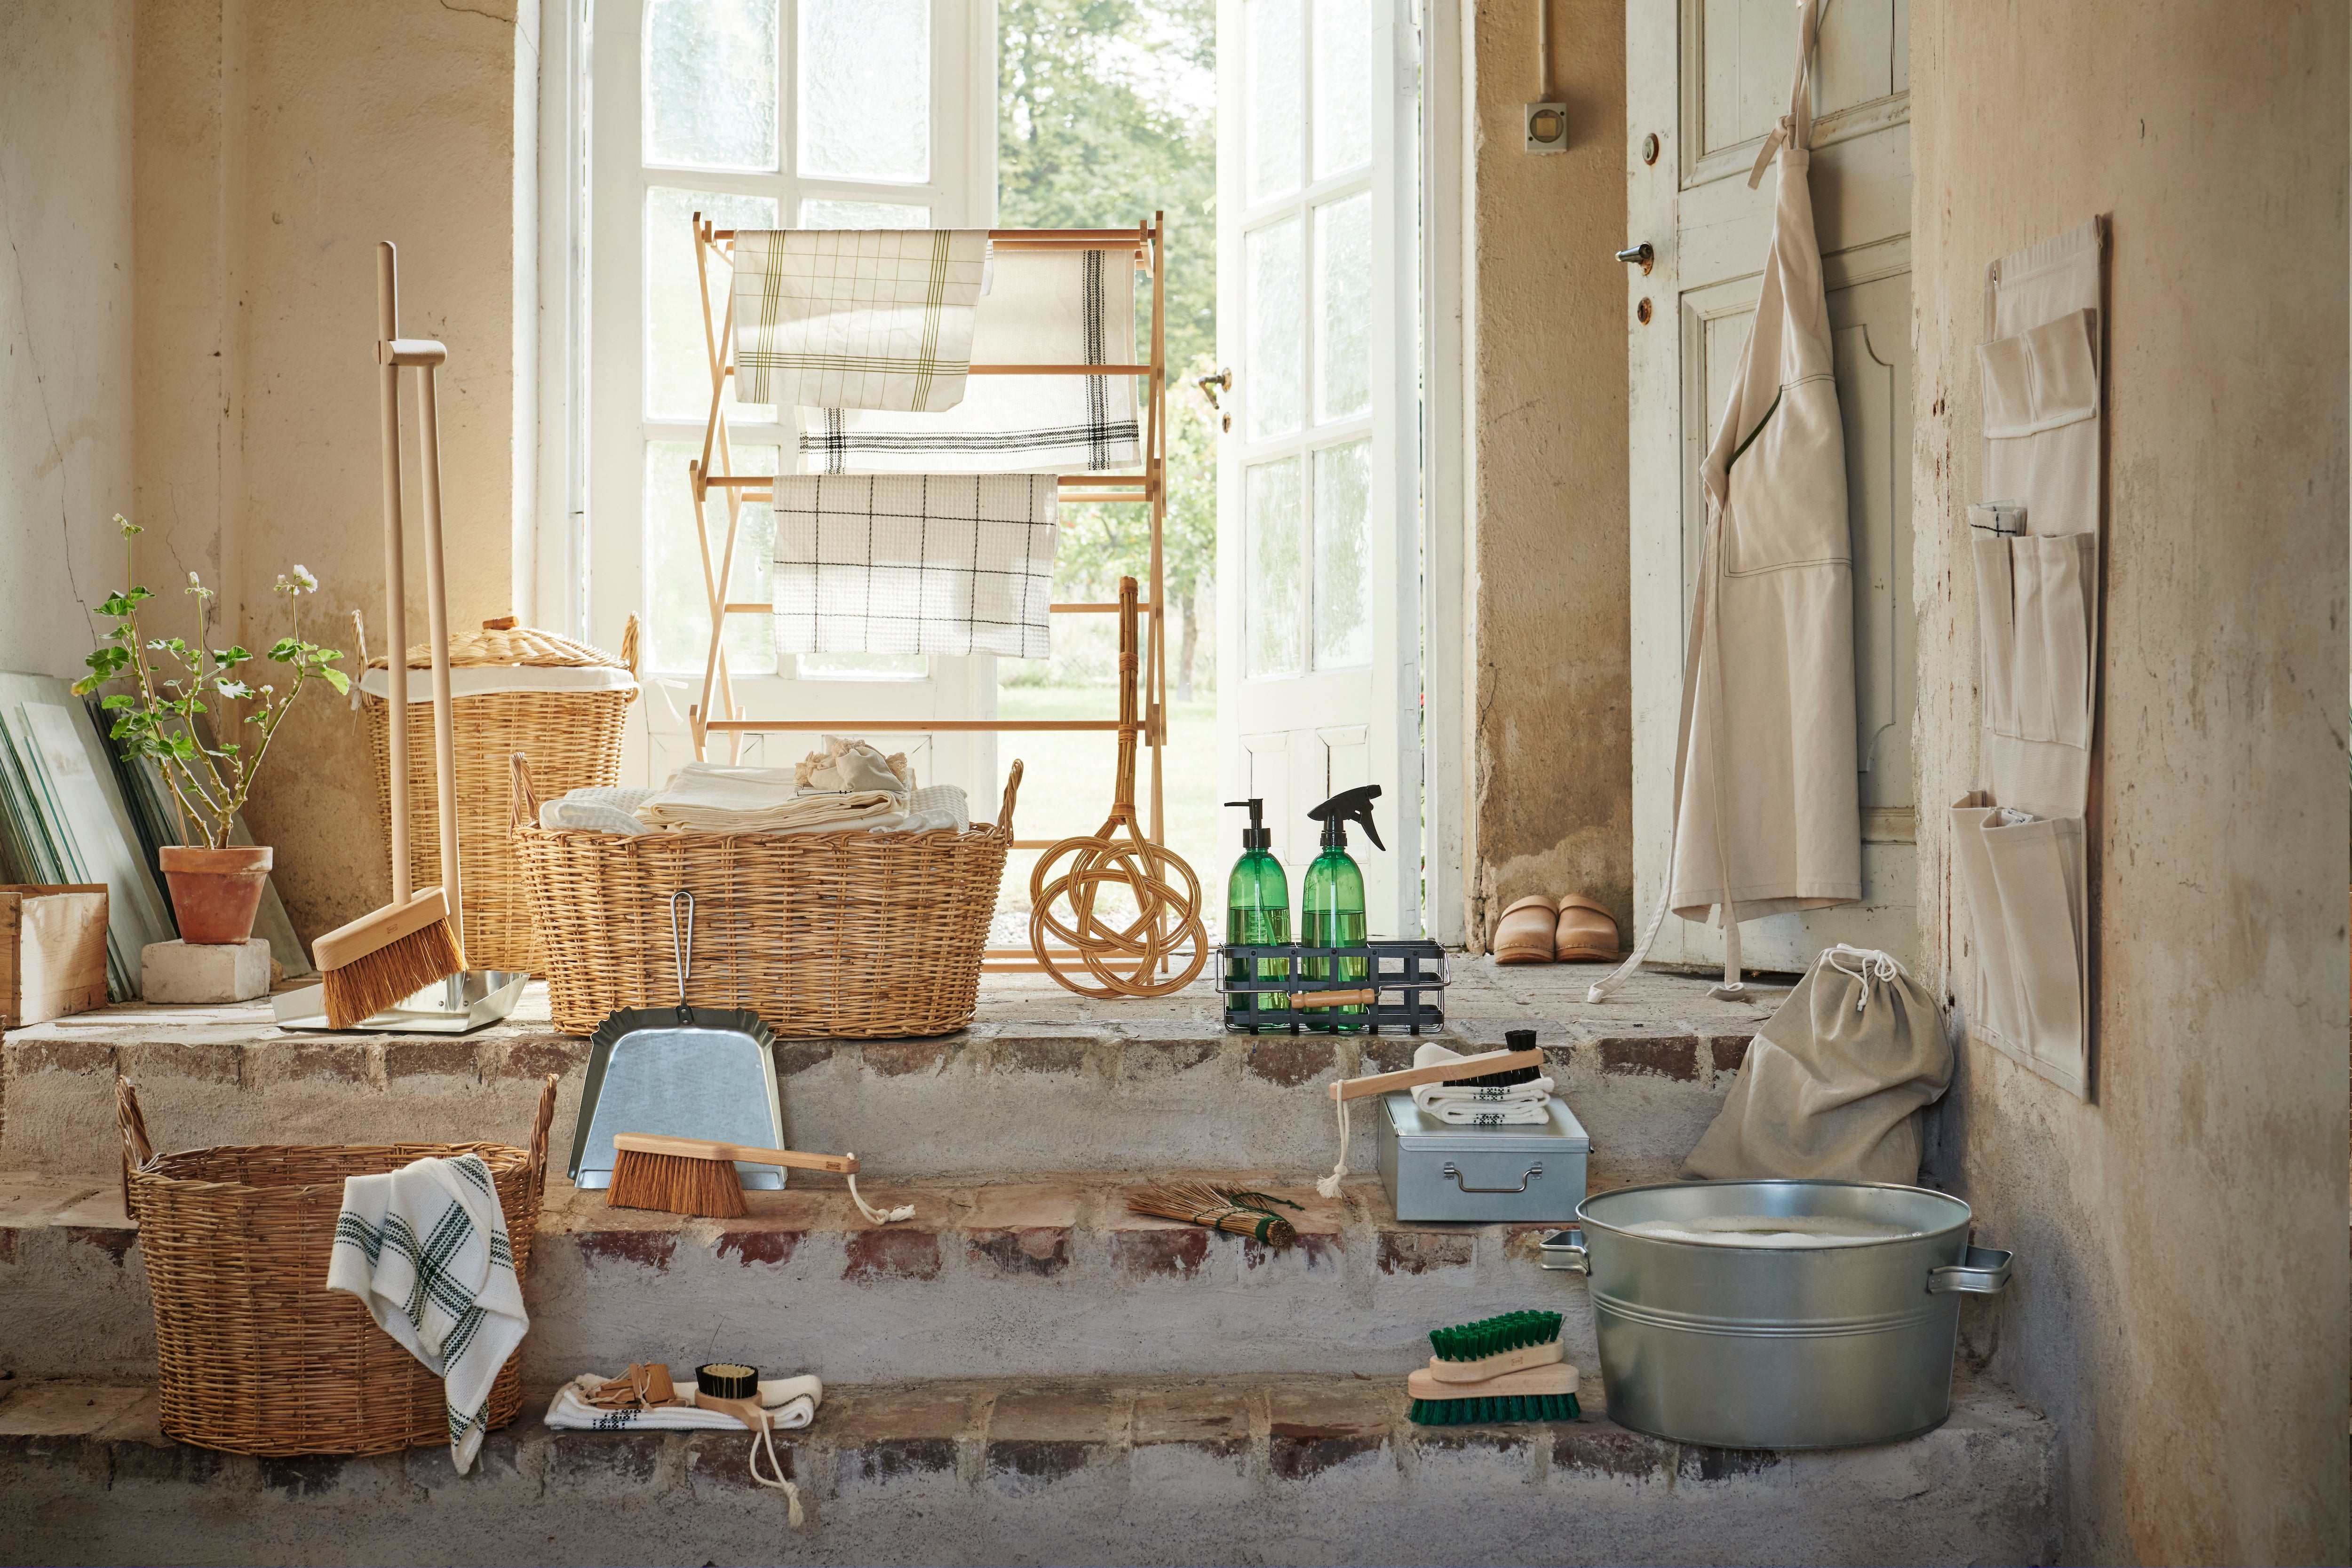 IKEA's New Collection Will Actually Make You Want to Clean